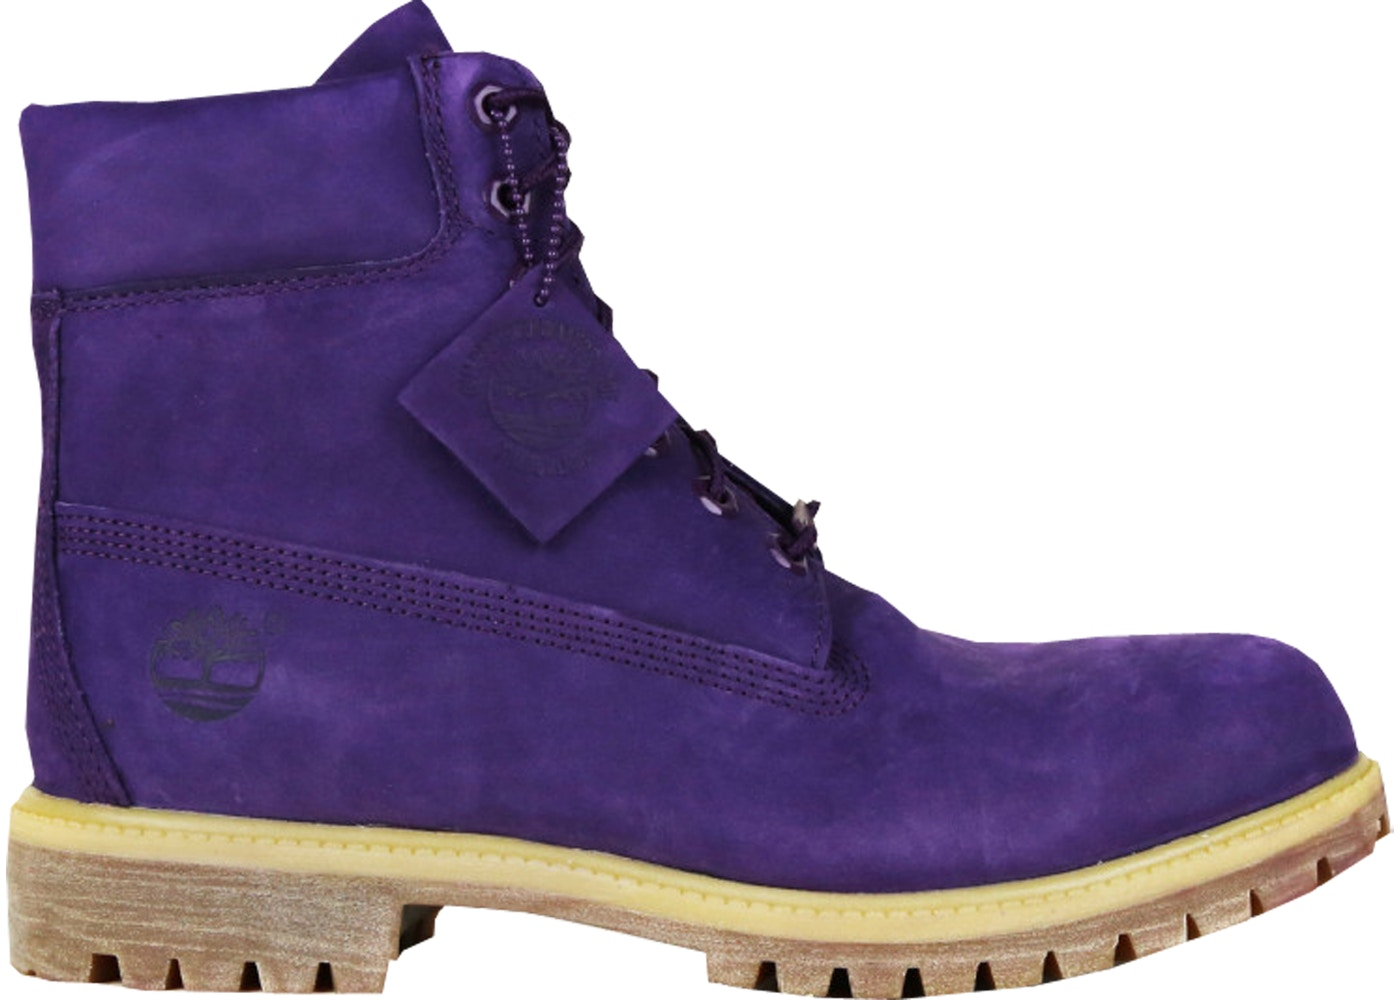 super popular e6d1d 3615d Sell. or Ask. Size  12. View All Bids. Timberland 6